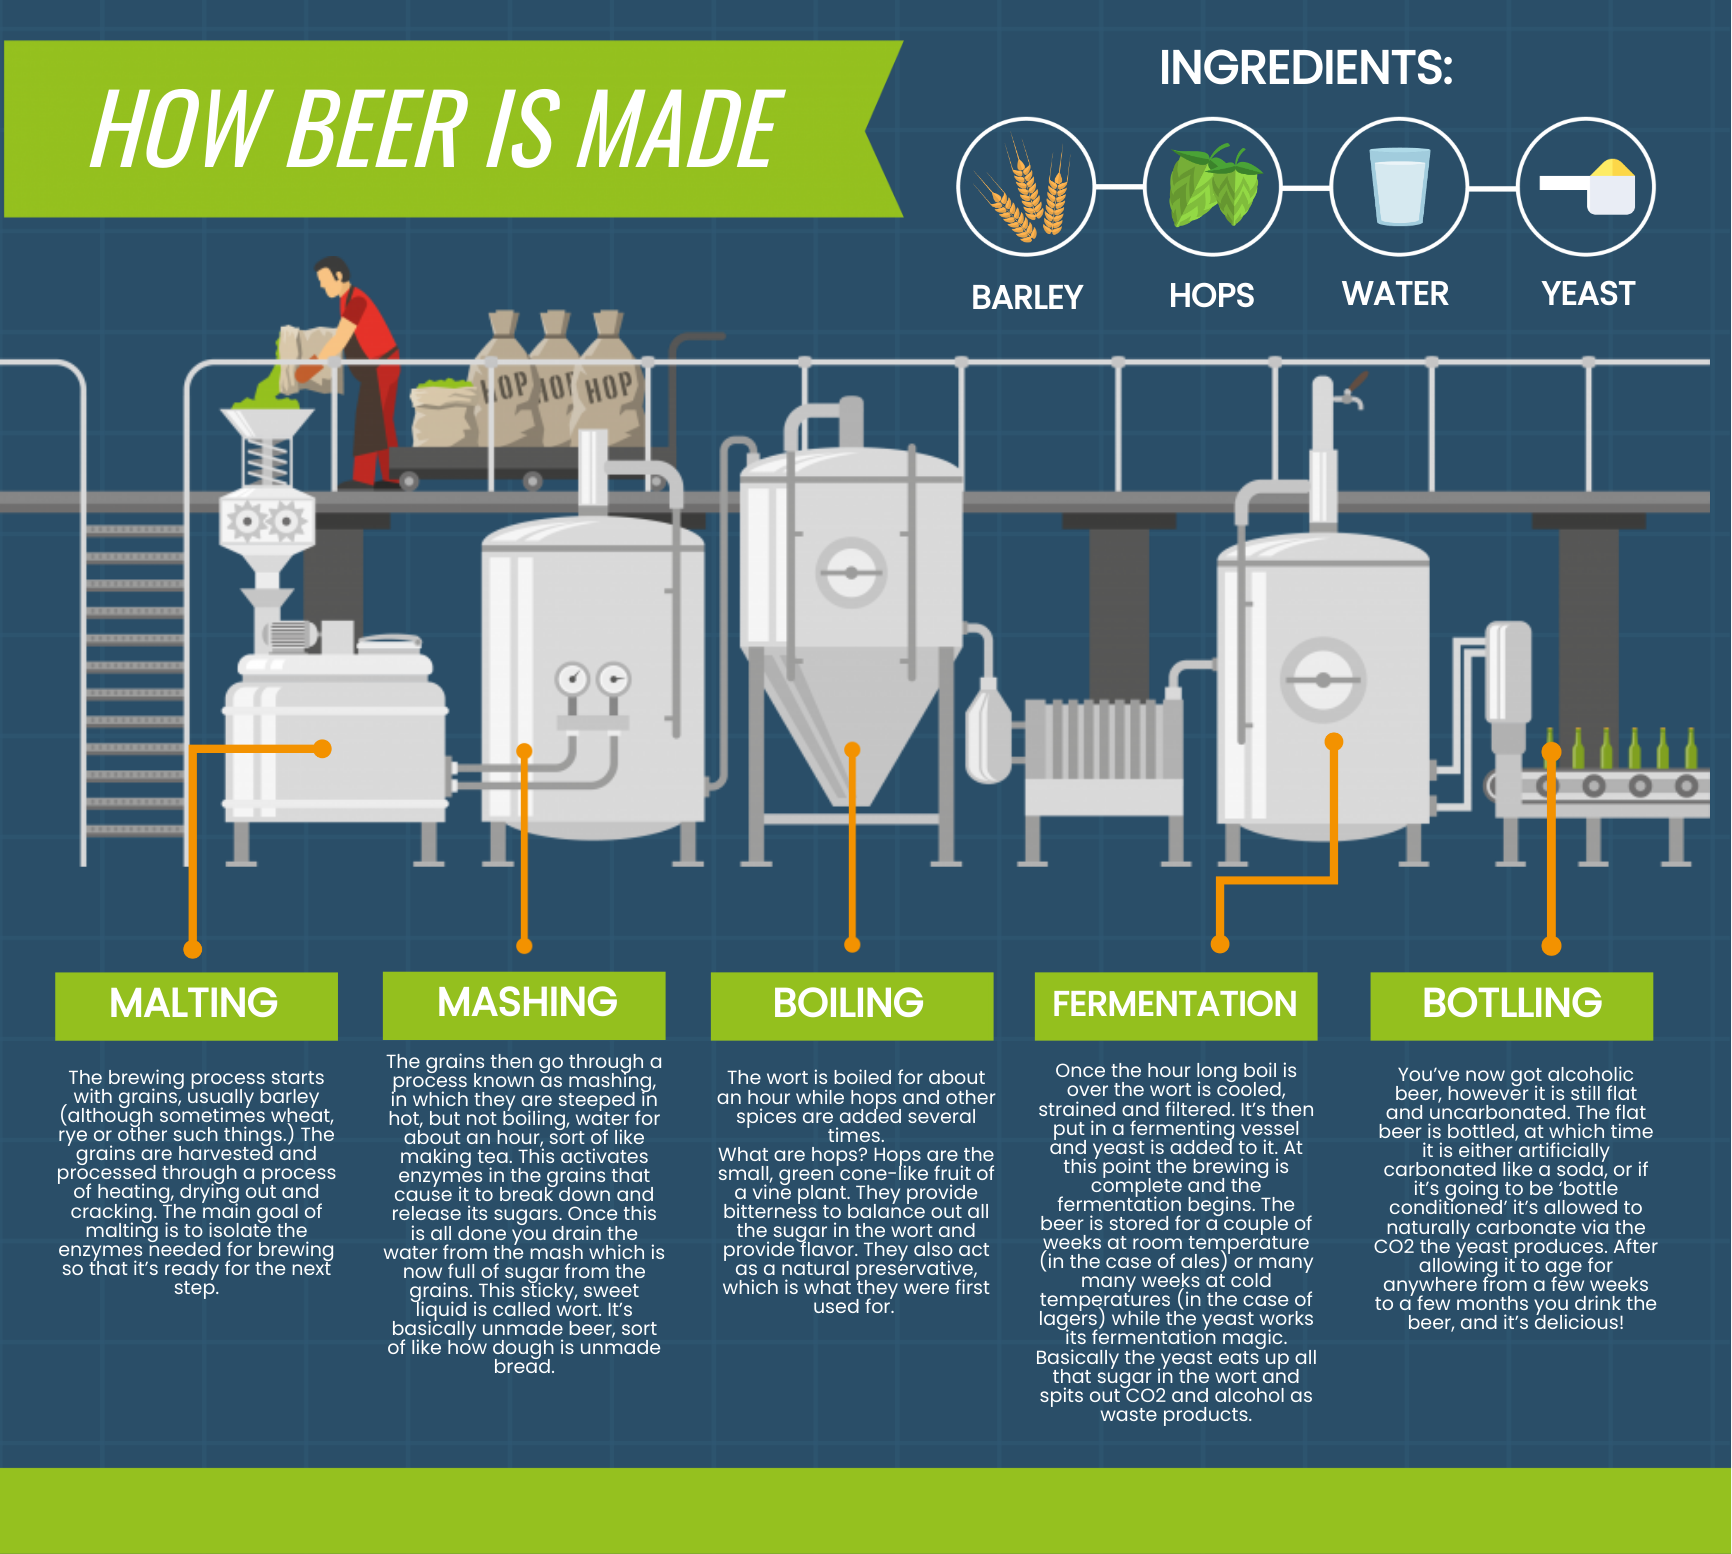 an infographic about the beer making process.